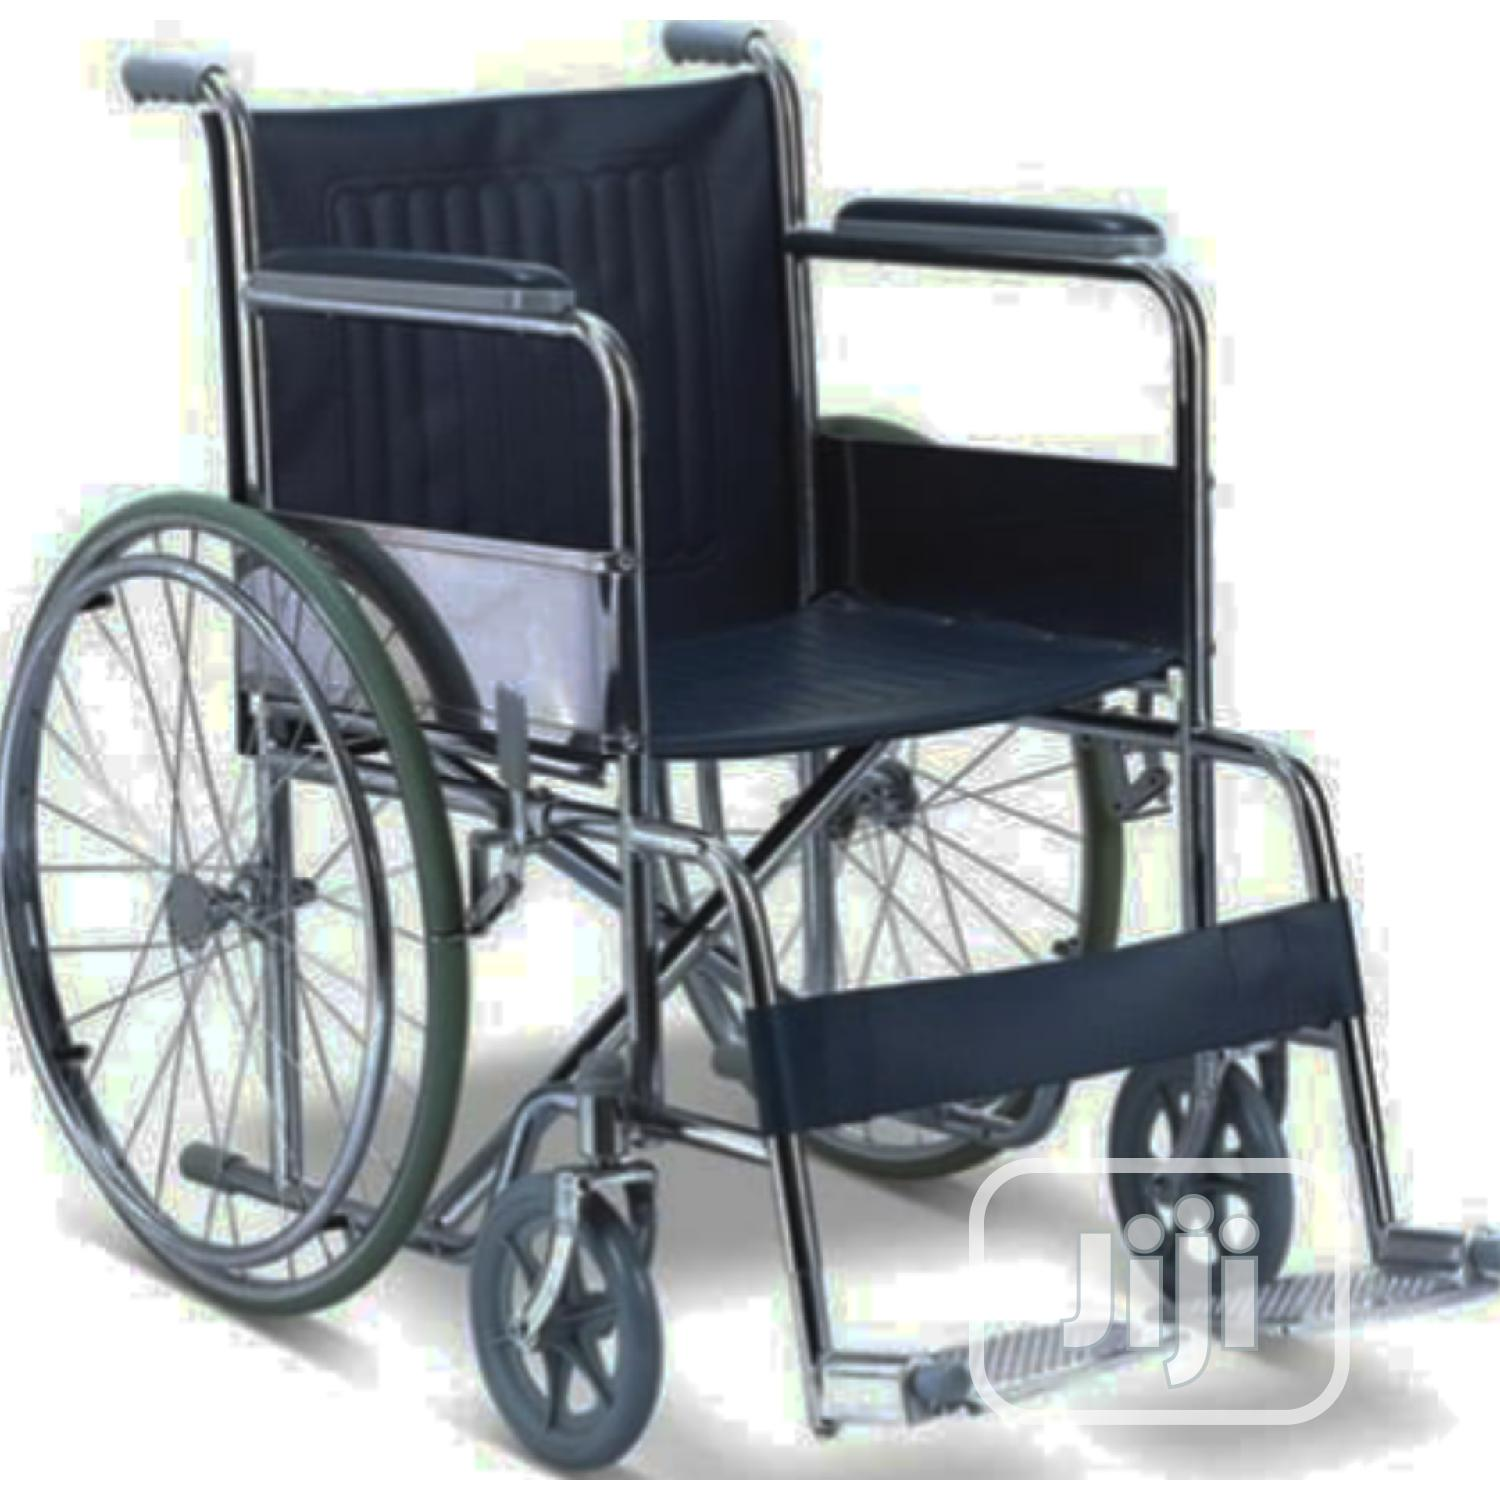 Wheel Chair | Medical Supplies & Equipment for sale in Amuwo-Odofin, Lagos State, Nigeria